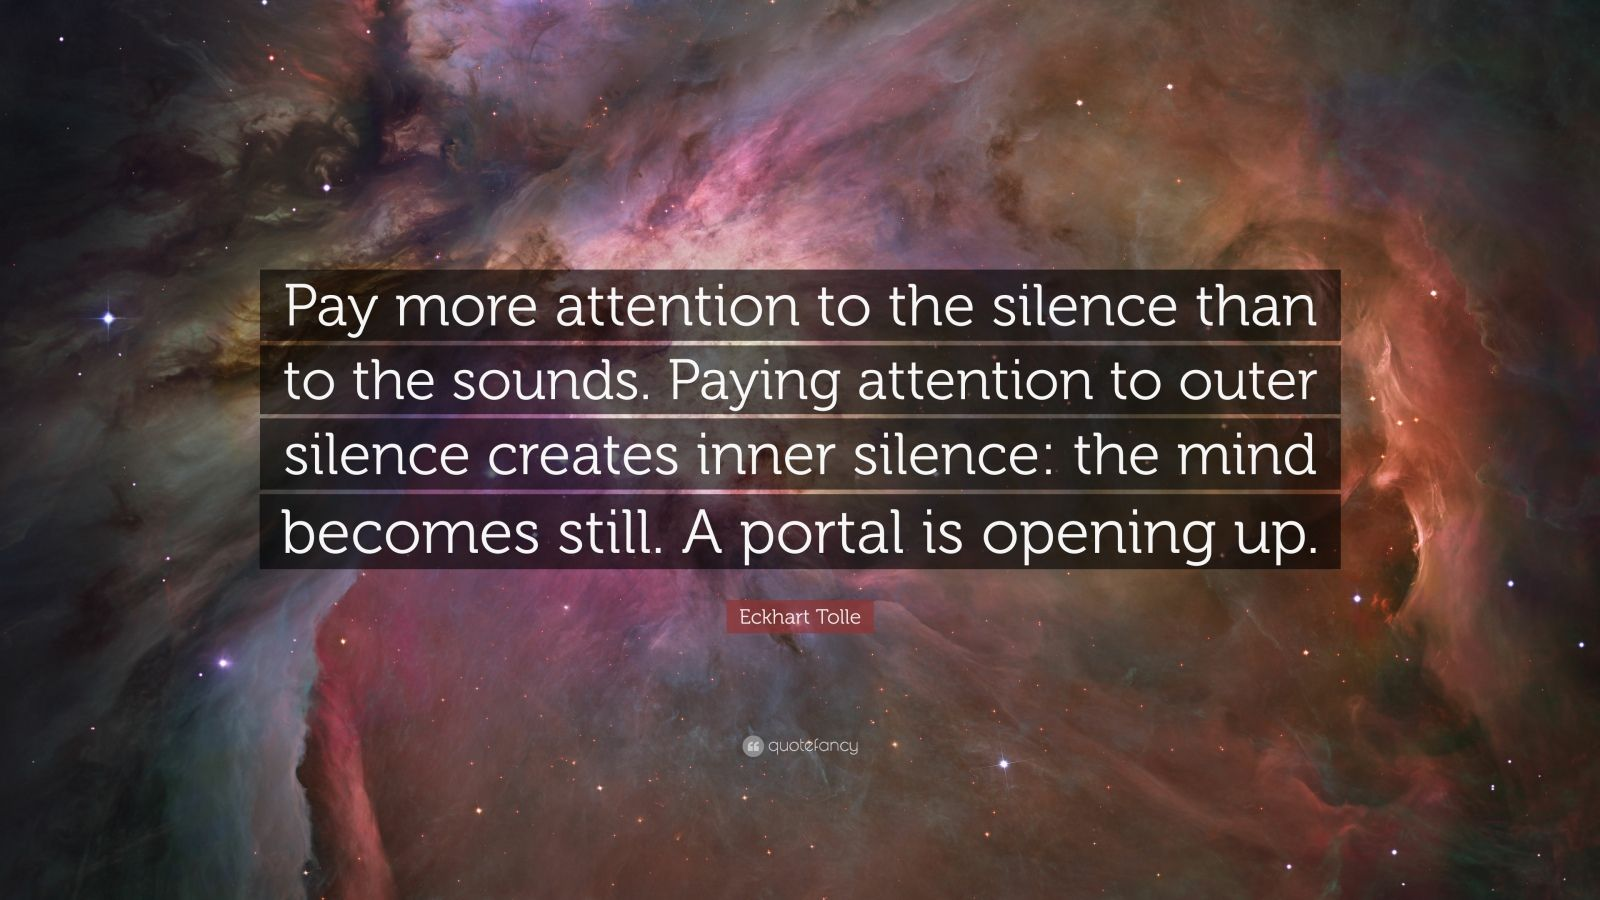 """Eckhart Tolle Quote: """"Pay more attention to the silence than to the sounds. Paying attention to outer silence creates inner silence: the mind becomes still. A portal is opening up."""""""